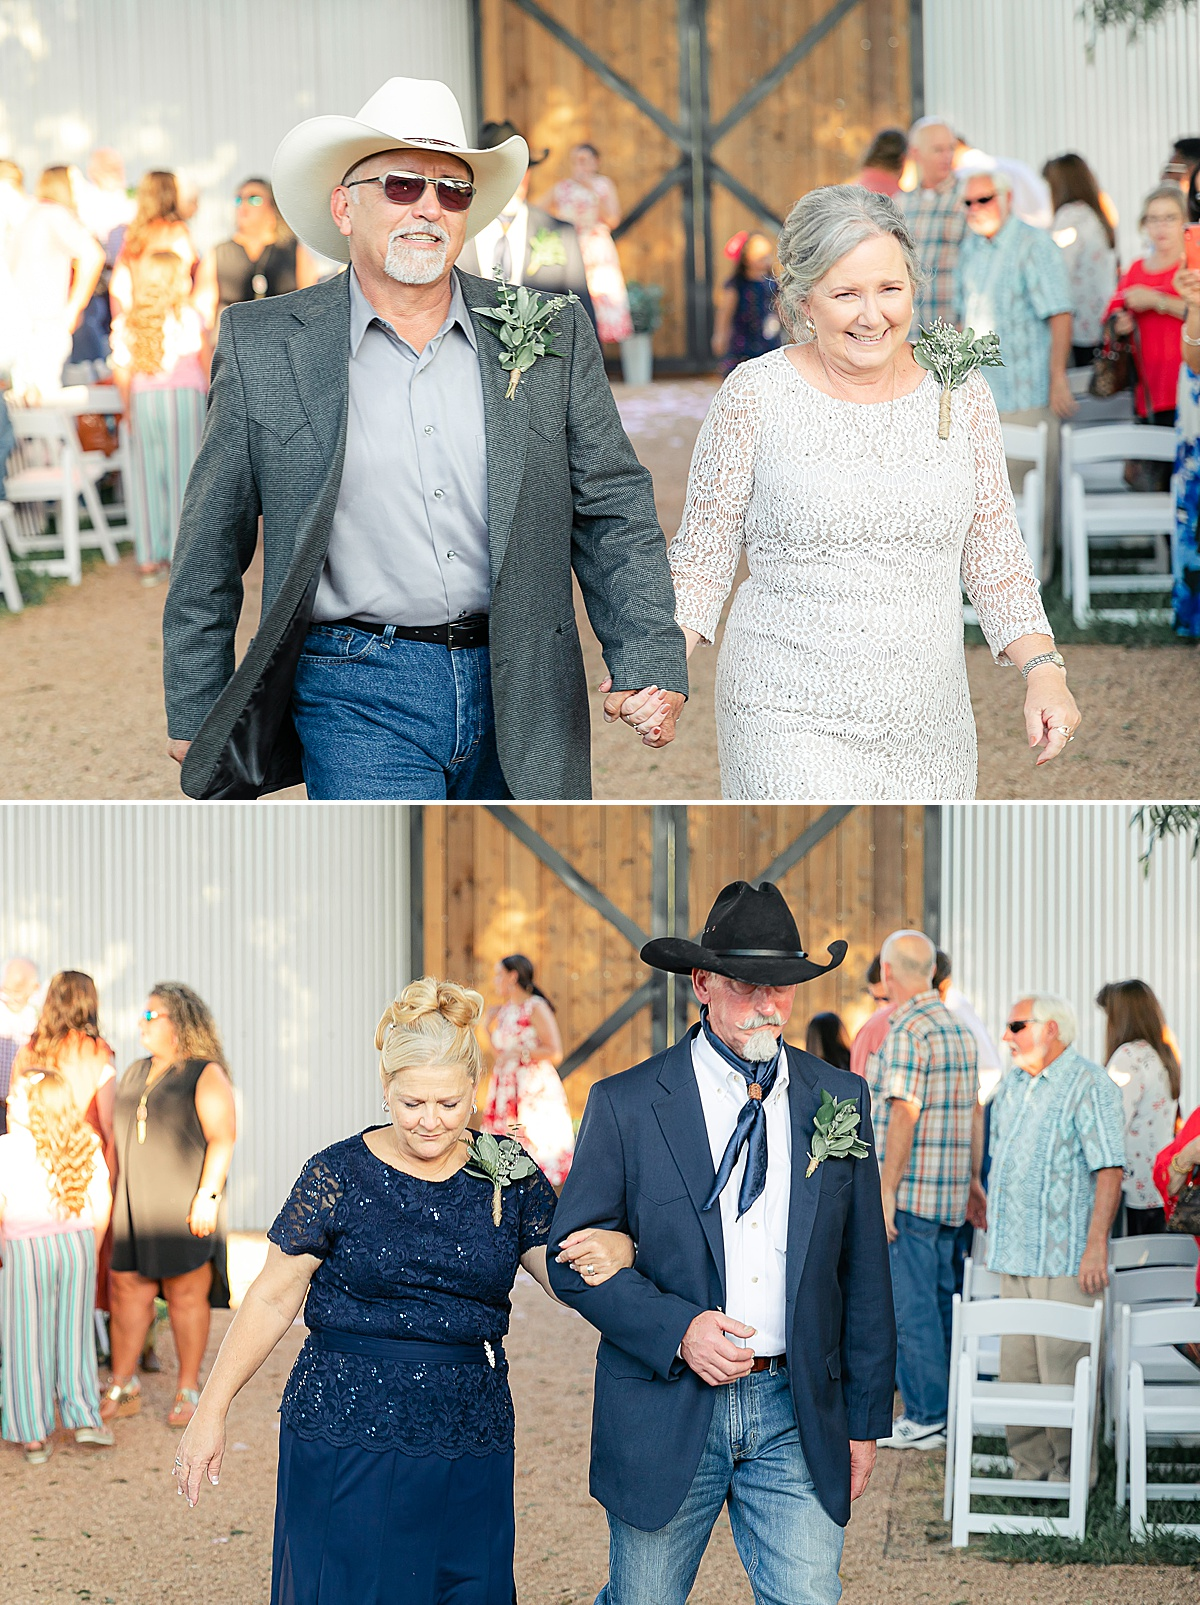 Rustic-Texas-Wedding-Hollow-Creek-Ranch-Carly-Barton-Photography_0117.jpg